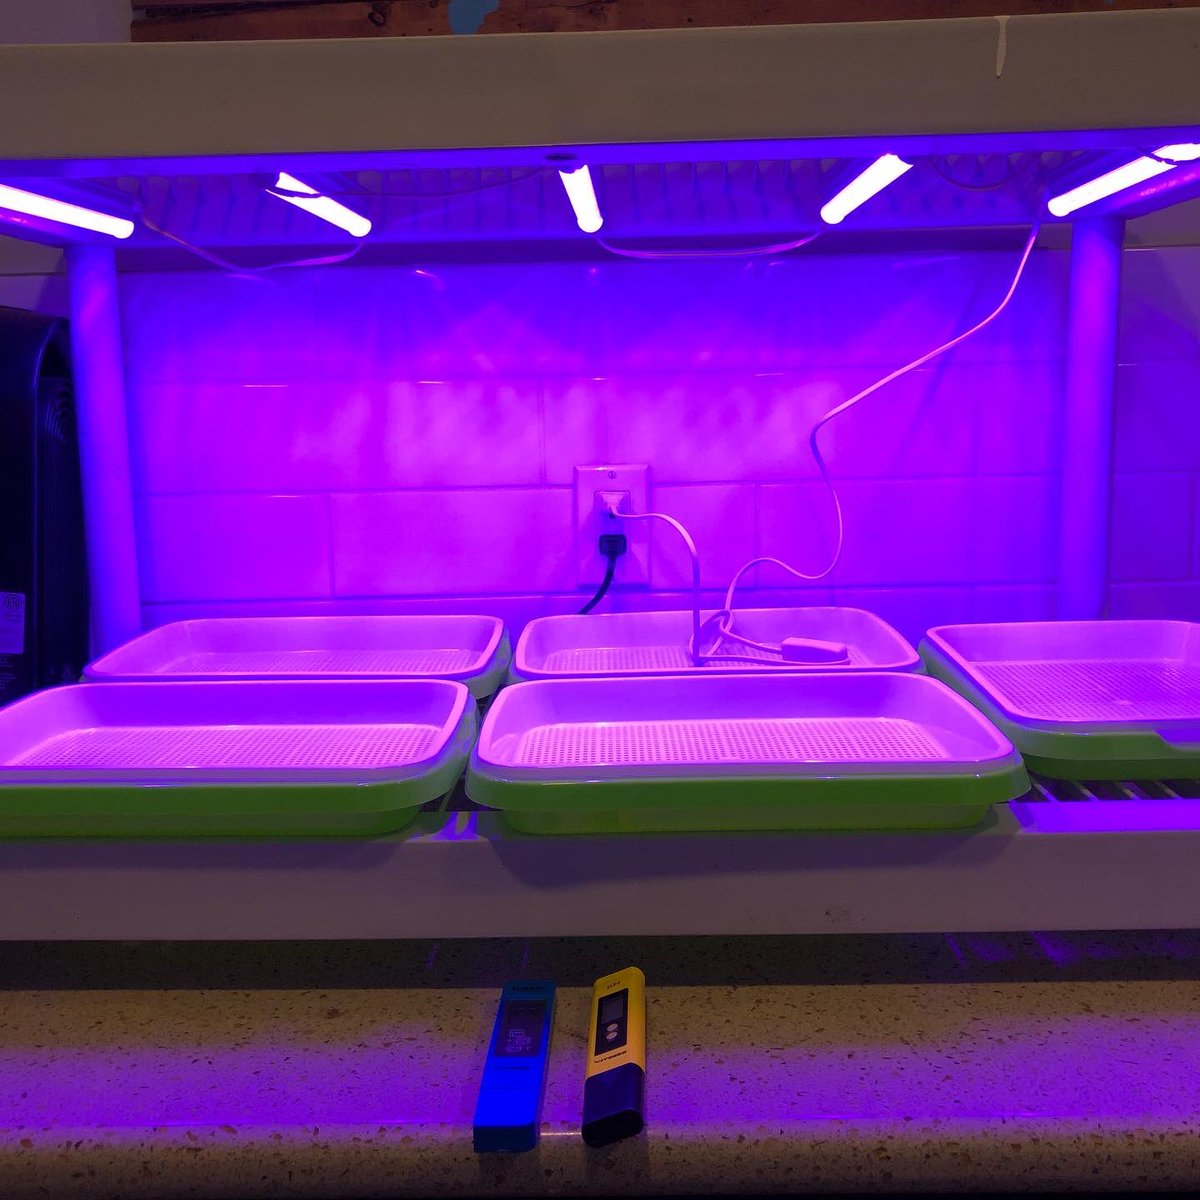 My next project is up and running. #MicroGreens  Otryad T5 Led Grow Lights Bar from Amazon, 5x Seed sprouting trays and a mix bag of seeds.  After doing an 'A' frame hydroponic system during the summer I've decided to try some smaller indoor options. #GrowYourOwn #MicroGrow https://t.co/Y3J4yhHHcW